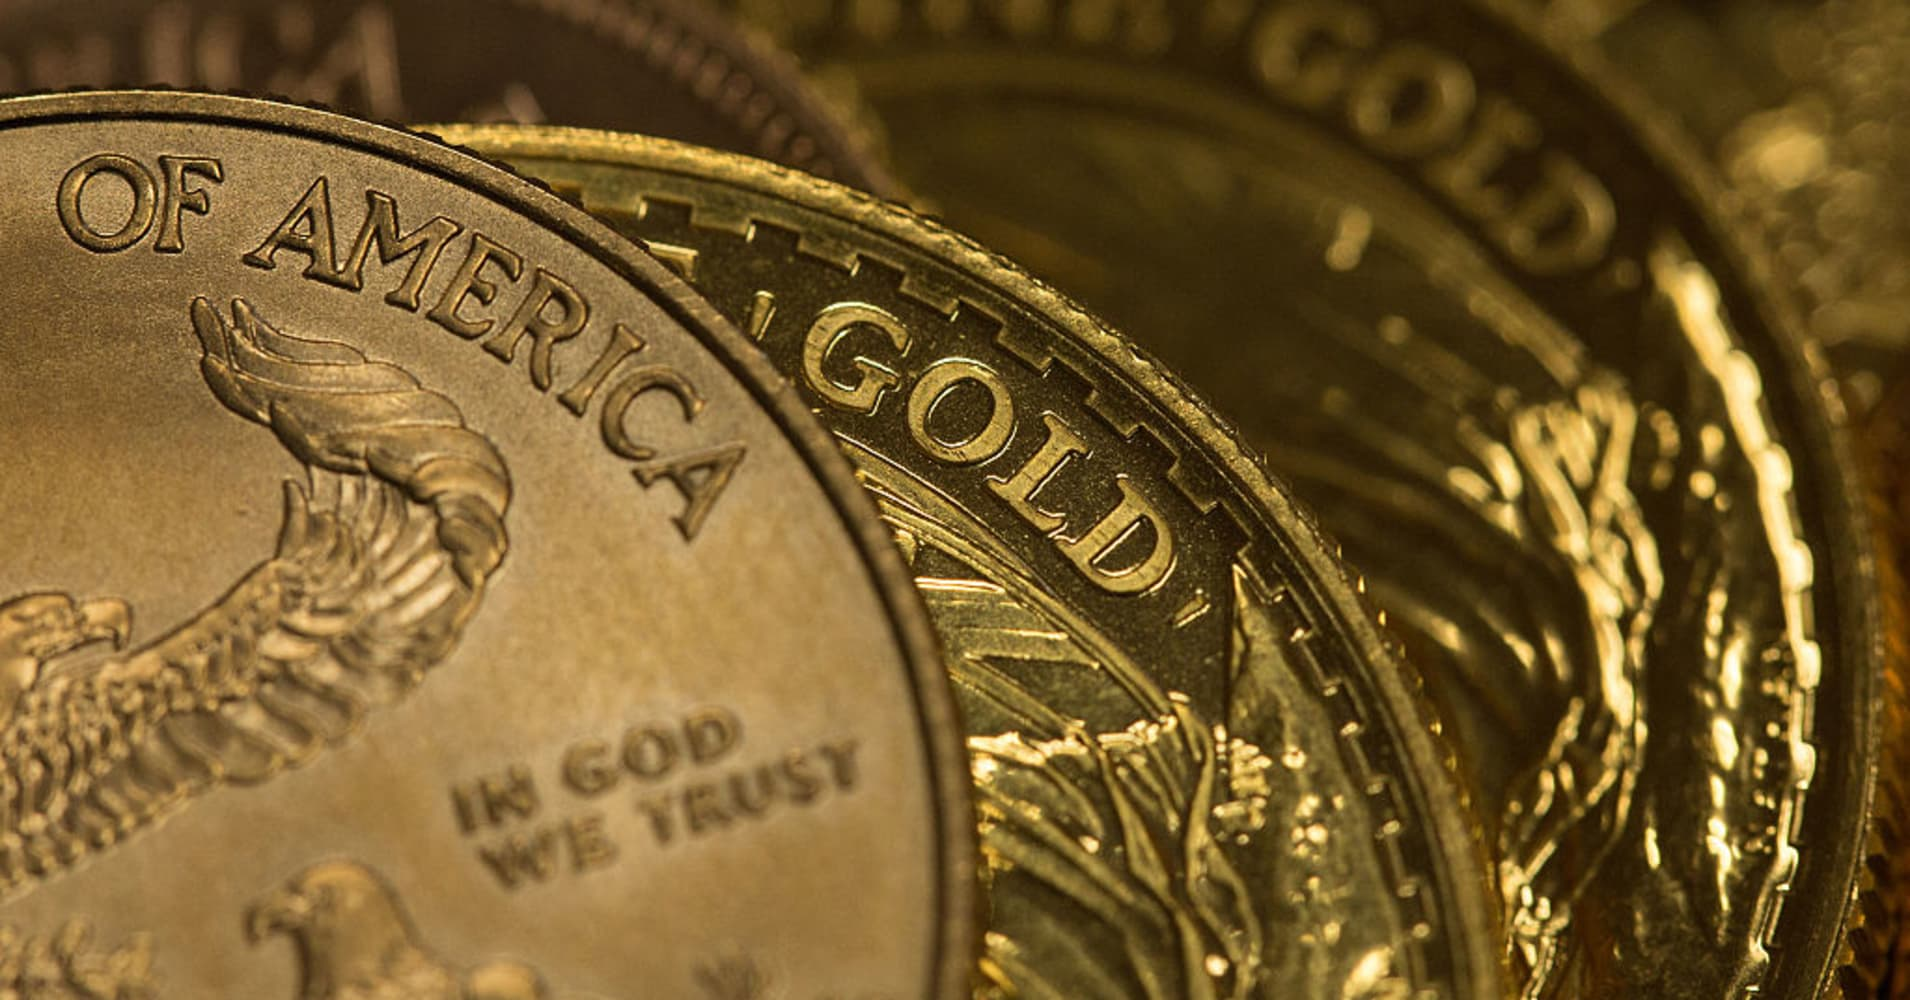 Gold firms as rising risk appetite offsets Fed pause views